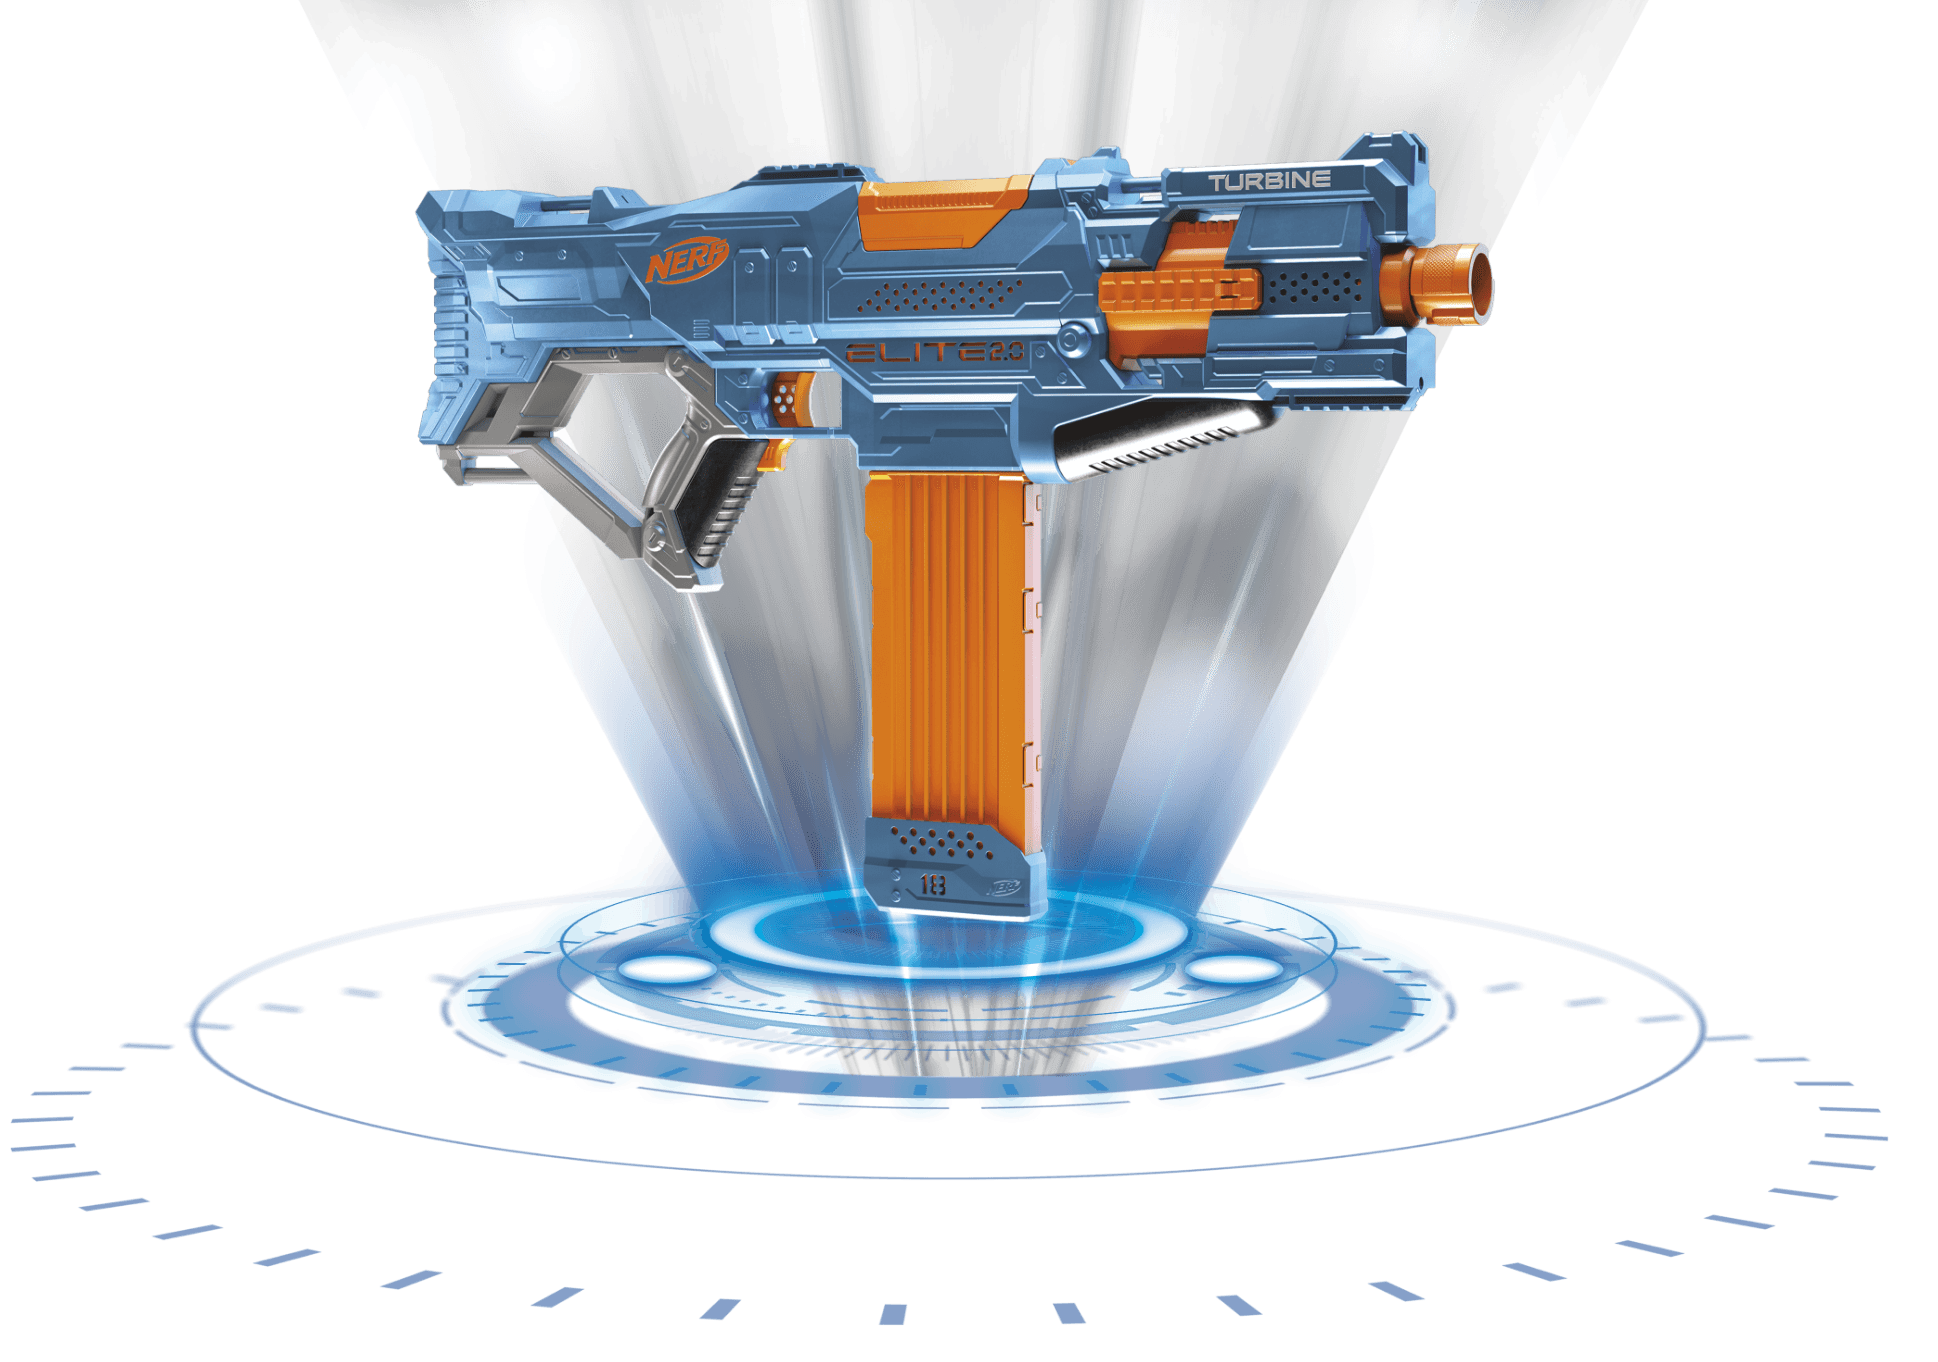 Nerf Elite 2.0 - TURBINE CS-18